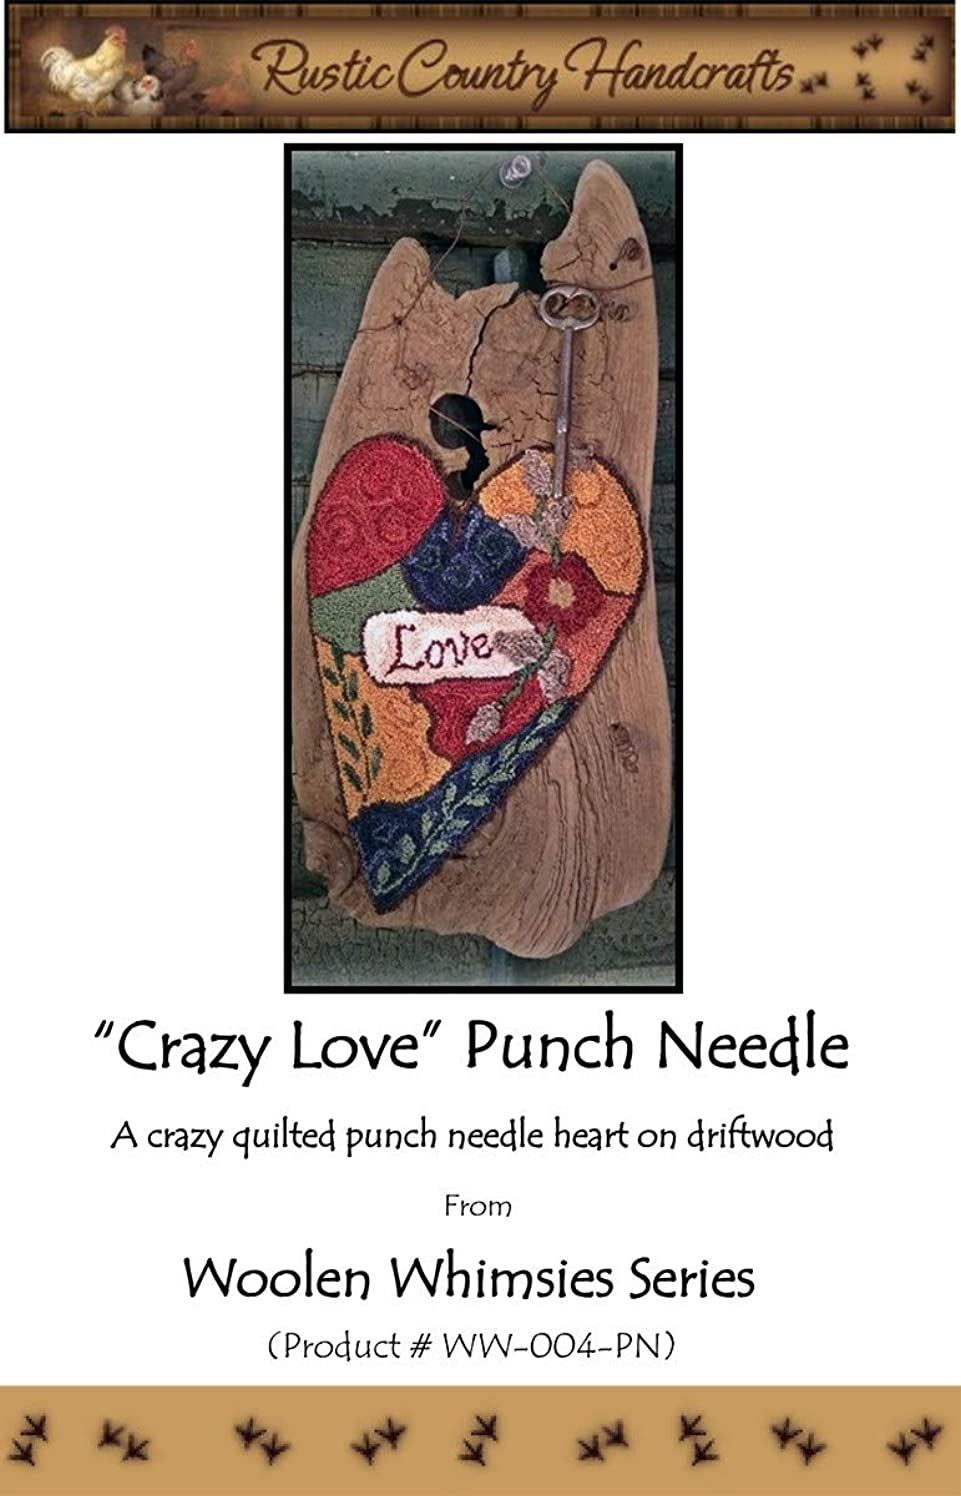 Rustic Country Handcrafts RCHWW-004PN Crazy Love Punch Needle Pattern